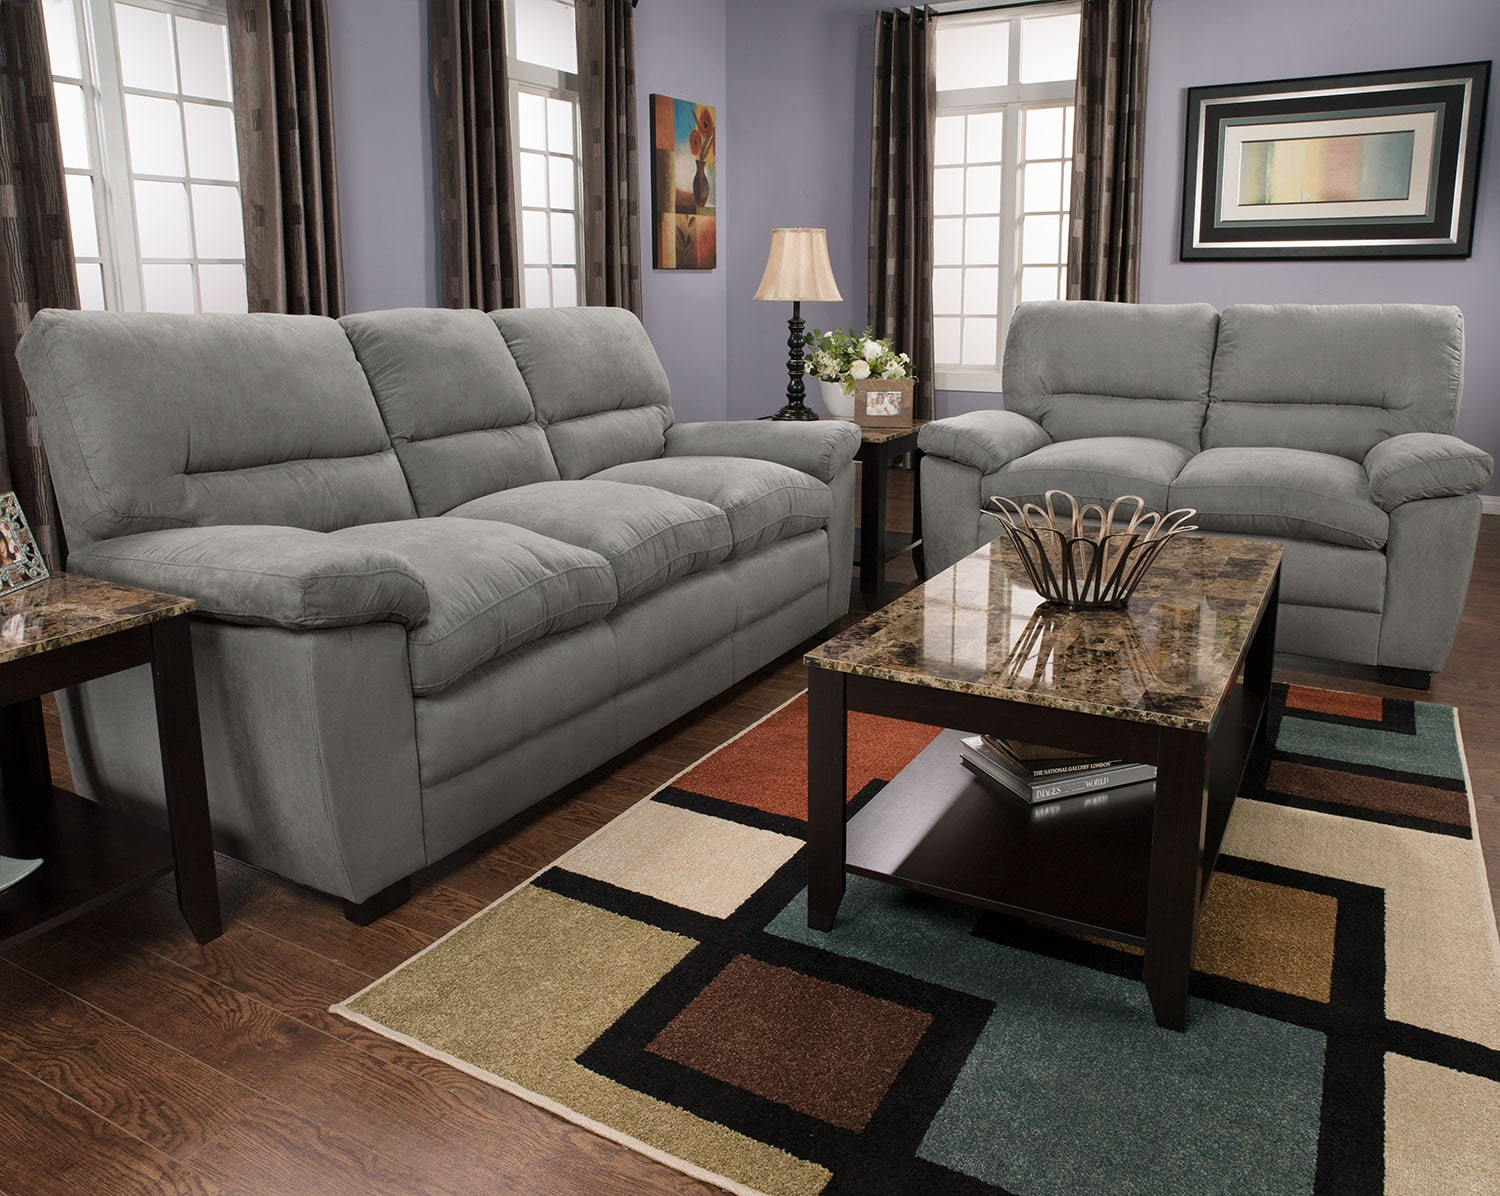 Peyton microsuede sofa grey united furniture warehouse for Grey microsuede sectional sofa